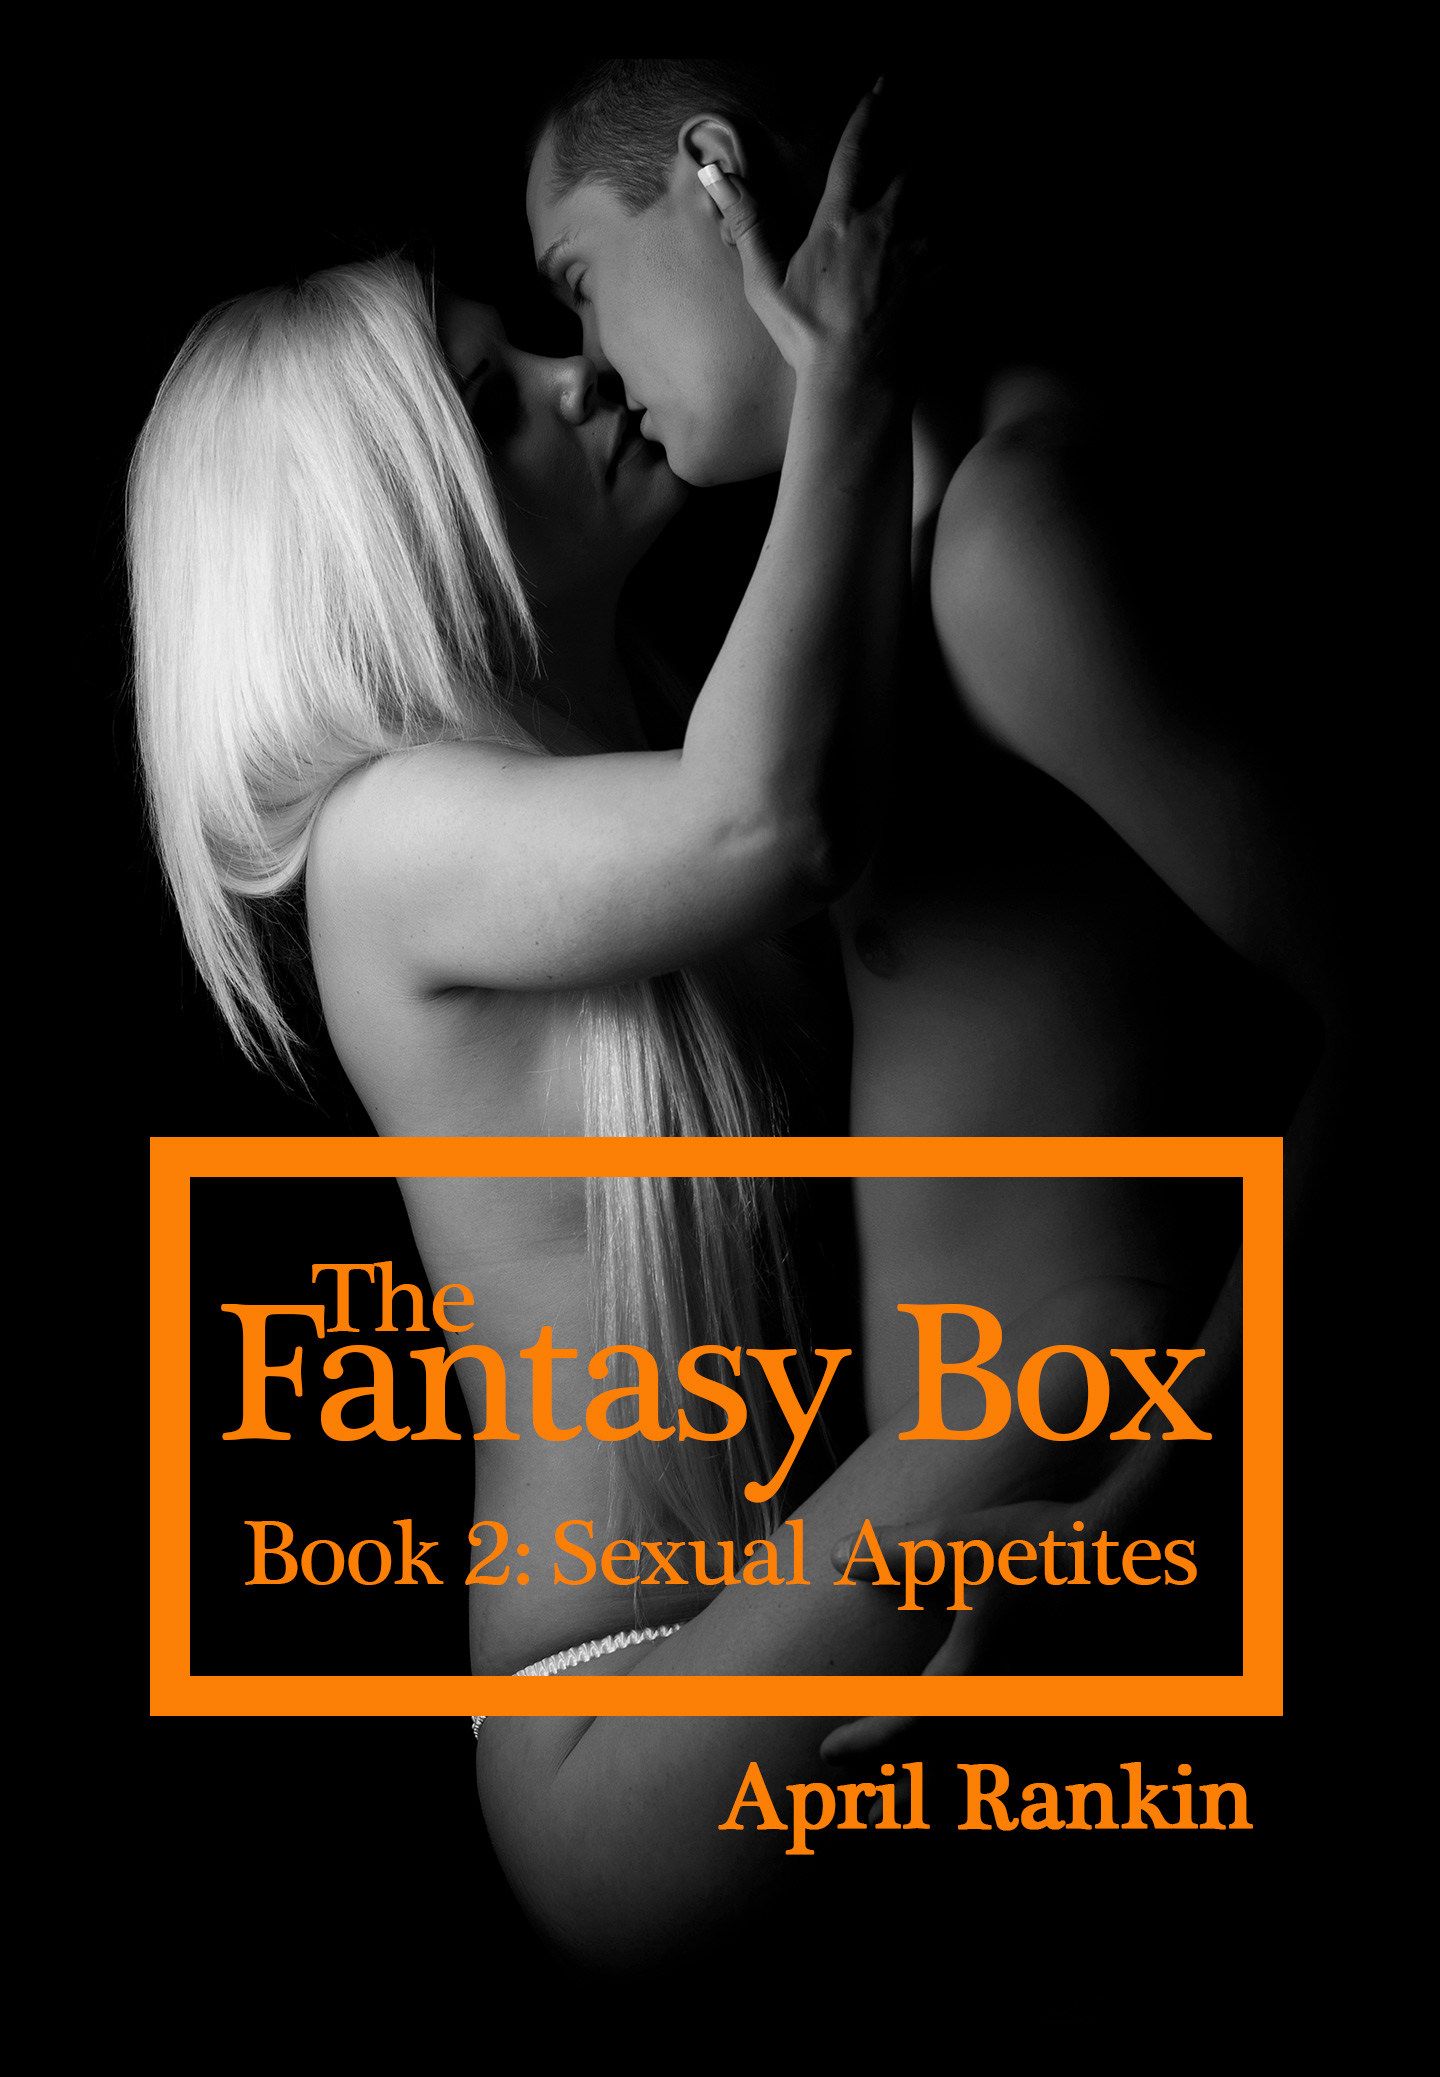 sexual fantacies We reached out to real men for the no-holds-barred truth when it comes to the absolute hottest fantasies they usually keep private take a look at their responses, and file them away as inspiration for a night when you want to spice things up a bit.